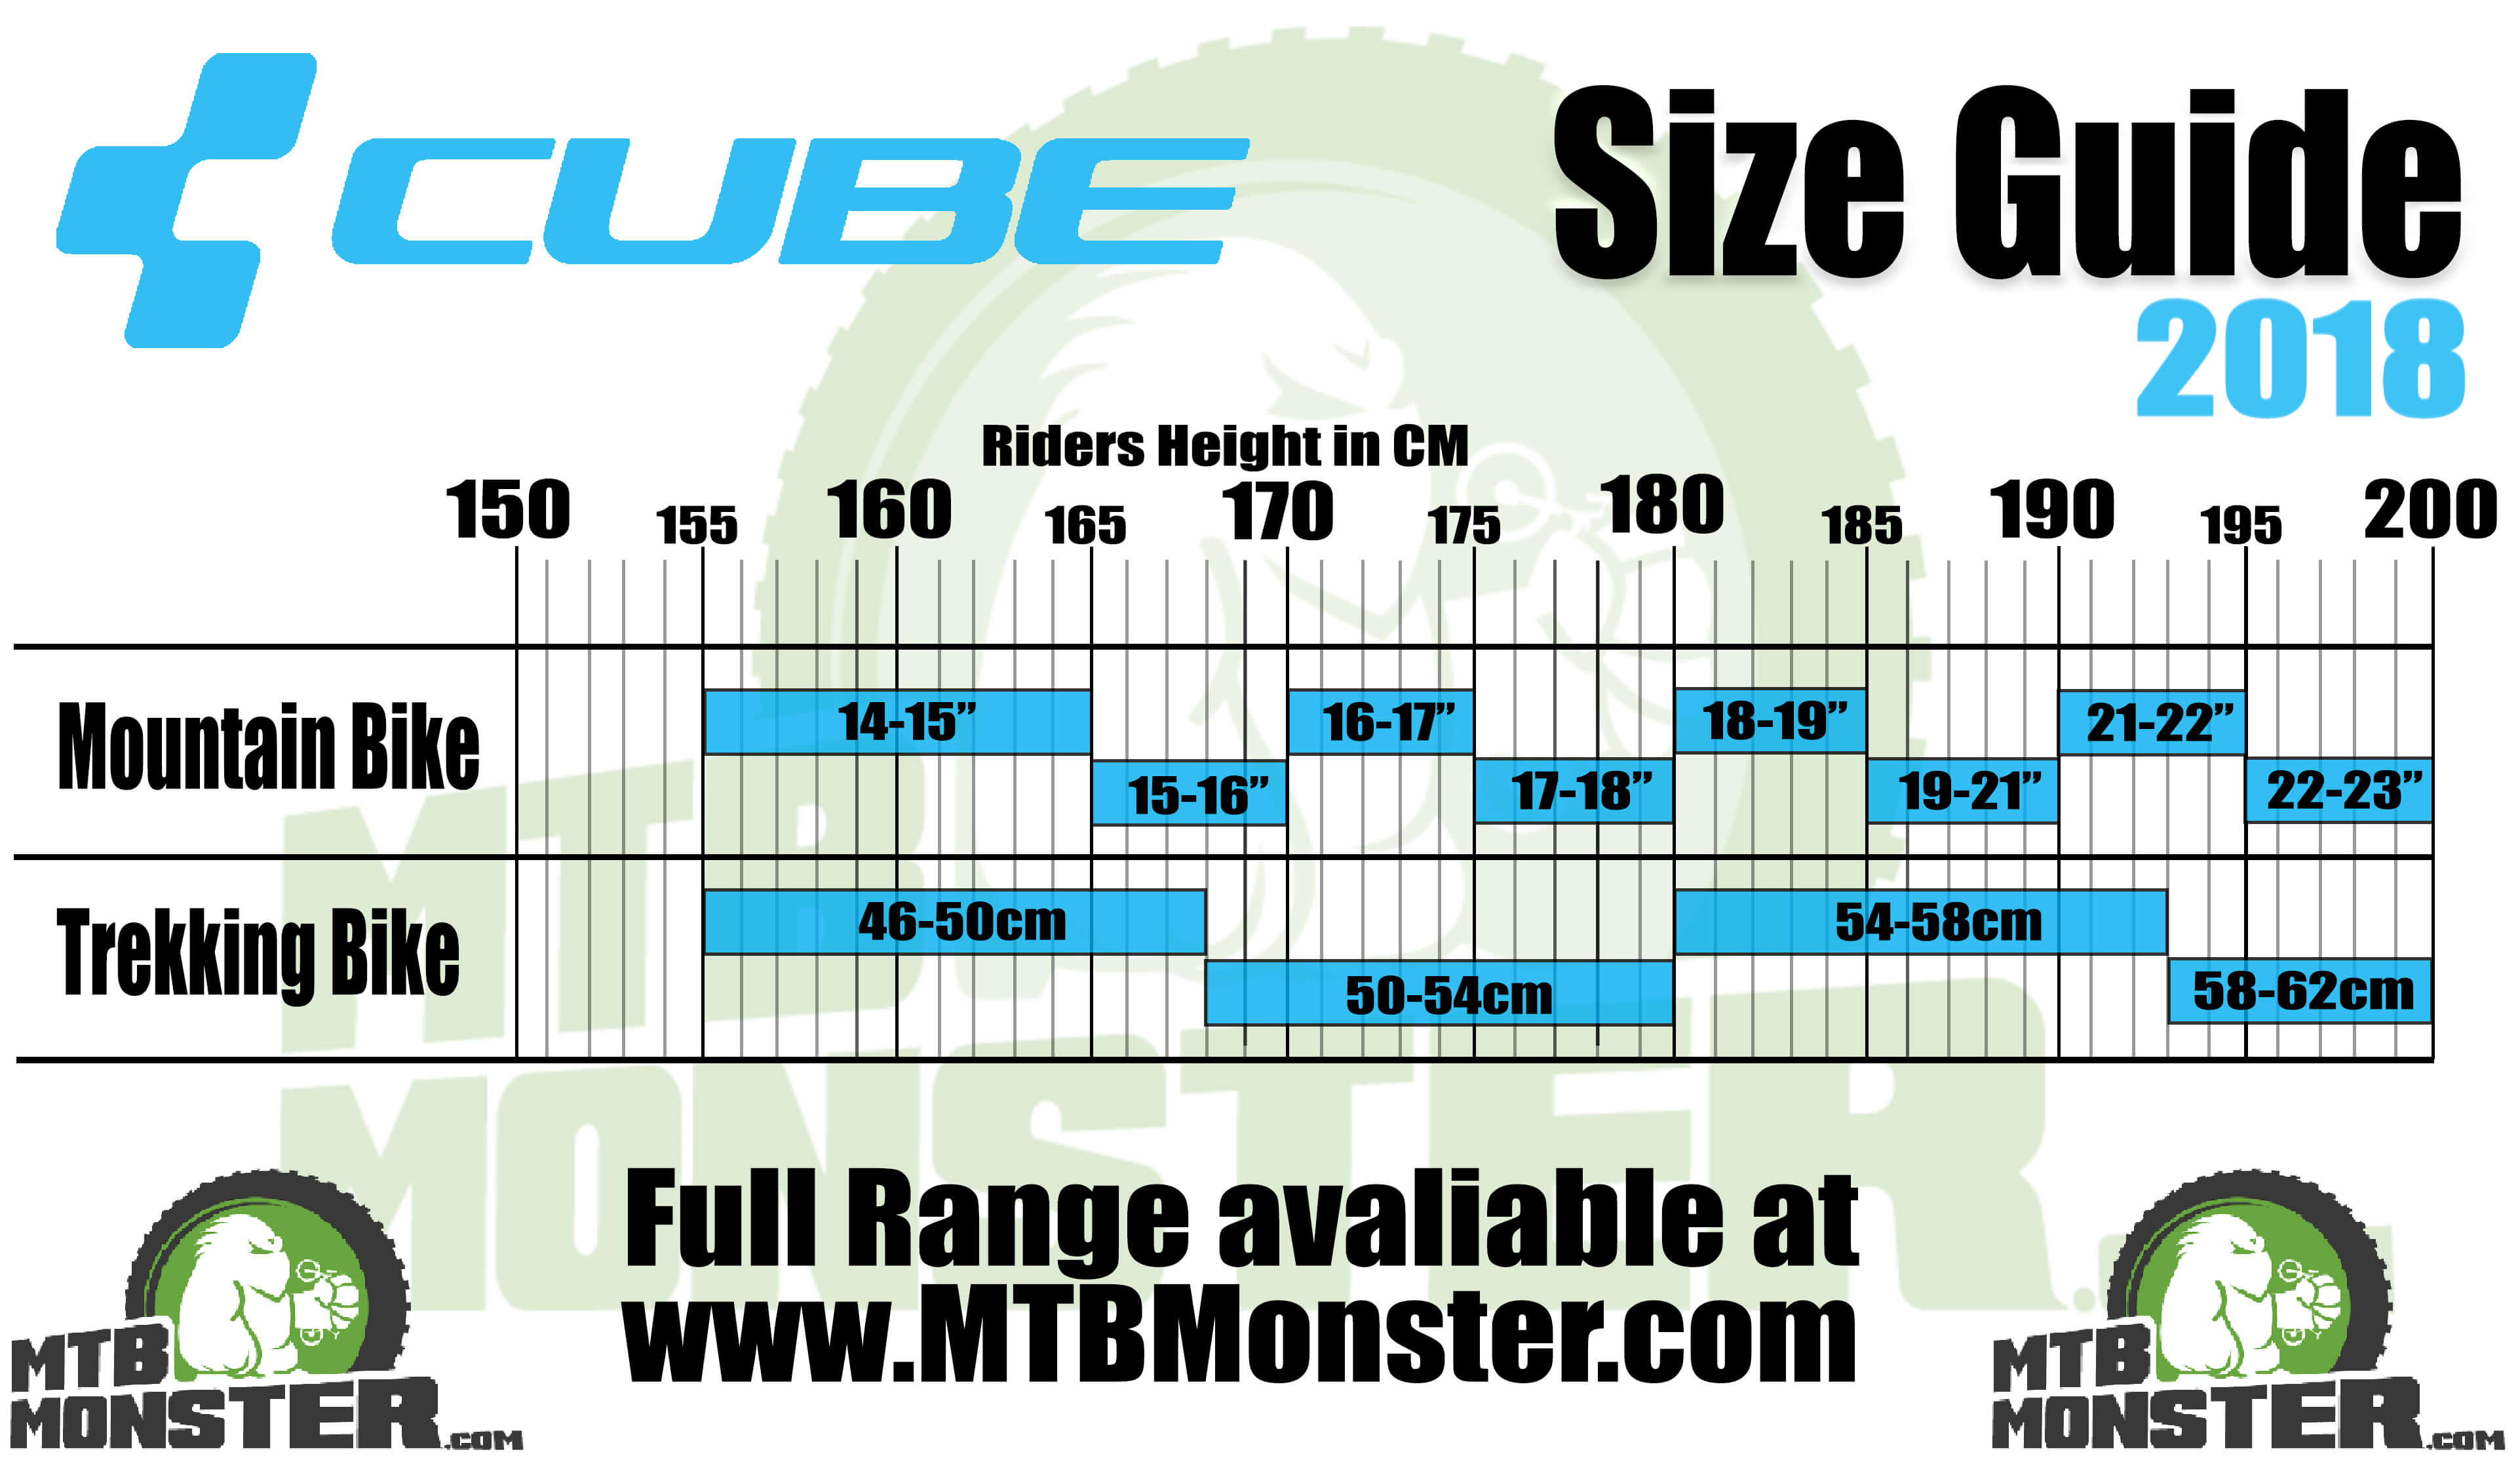 Cube Bikes Size Guide, Cube Bikes Sizing Chart 2018